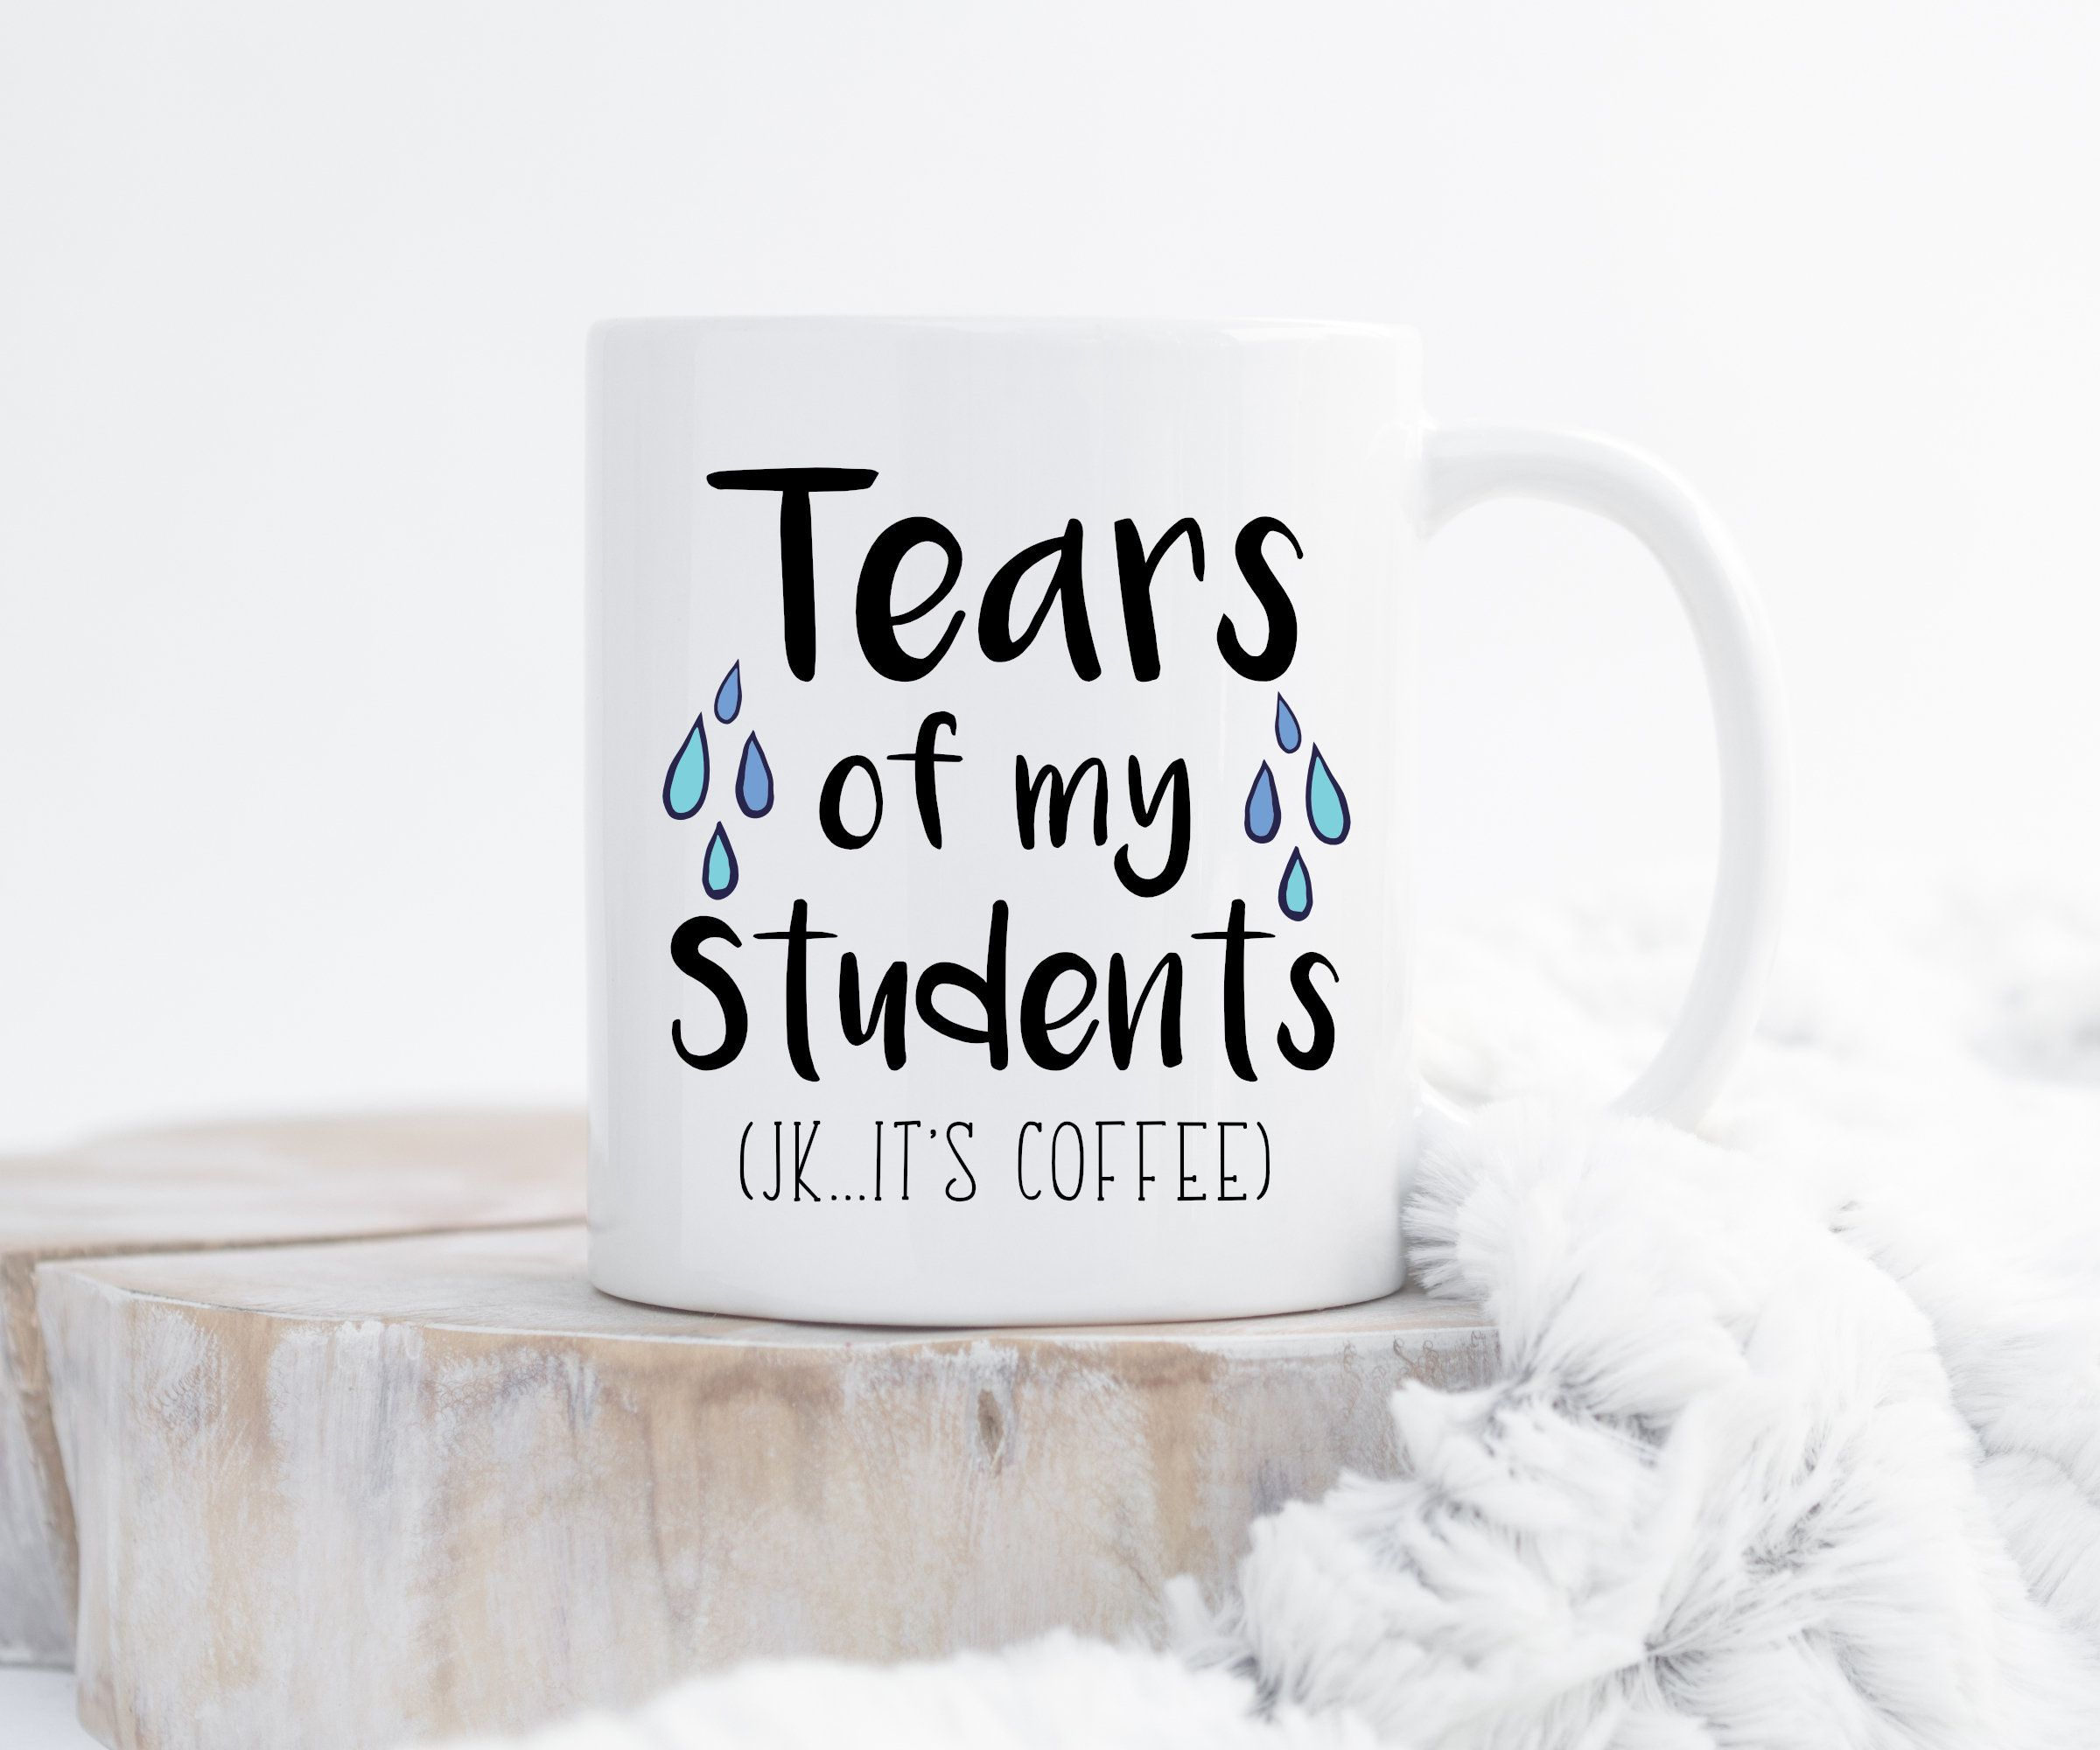 ad5a872f69f Tears Of My Students - Coffee Mug, Quote Mug, Teacher Mug, Teacher Gift,  Funny Coffee Mug, Teacher Appreciation, End Of Year Mug